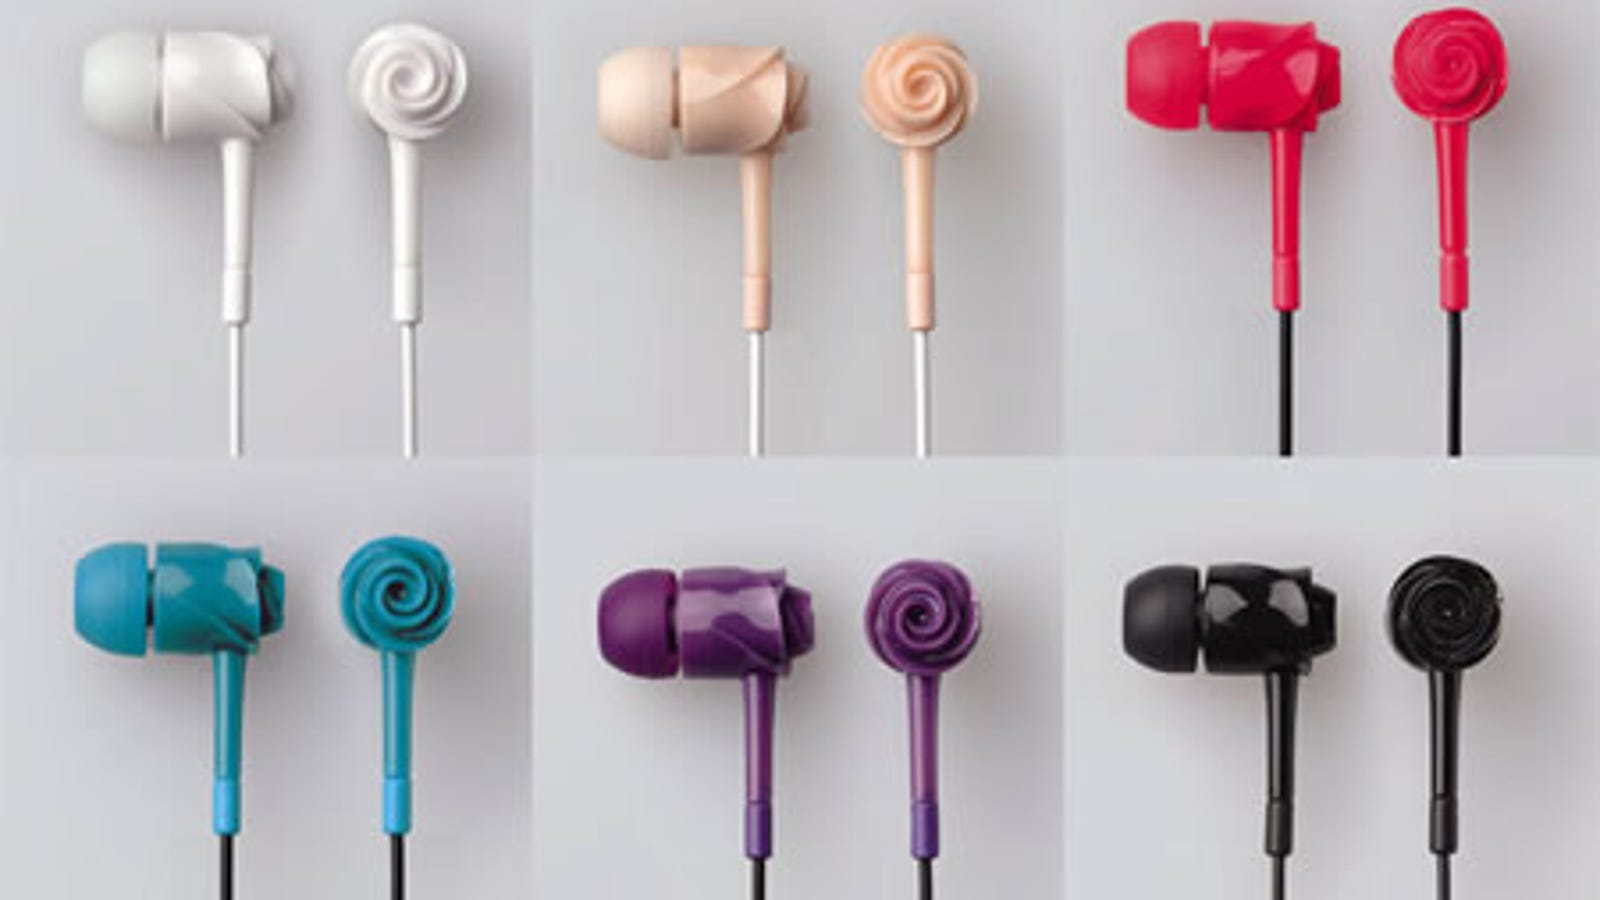 house of marley earbuds - Elecom Rose EarDrops Phones: Rosebuds for Your Ears